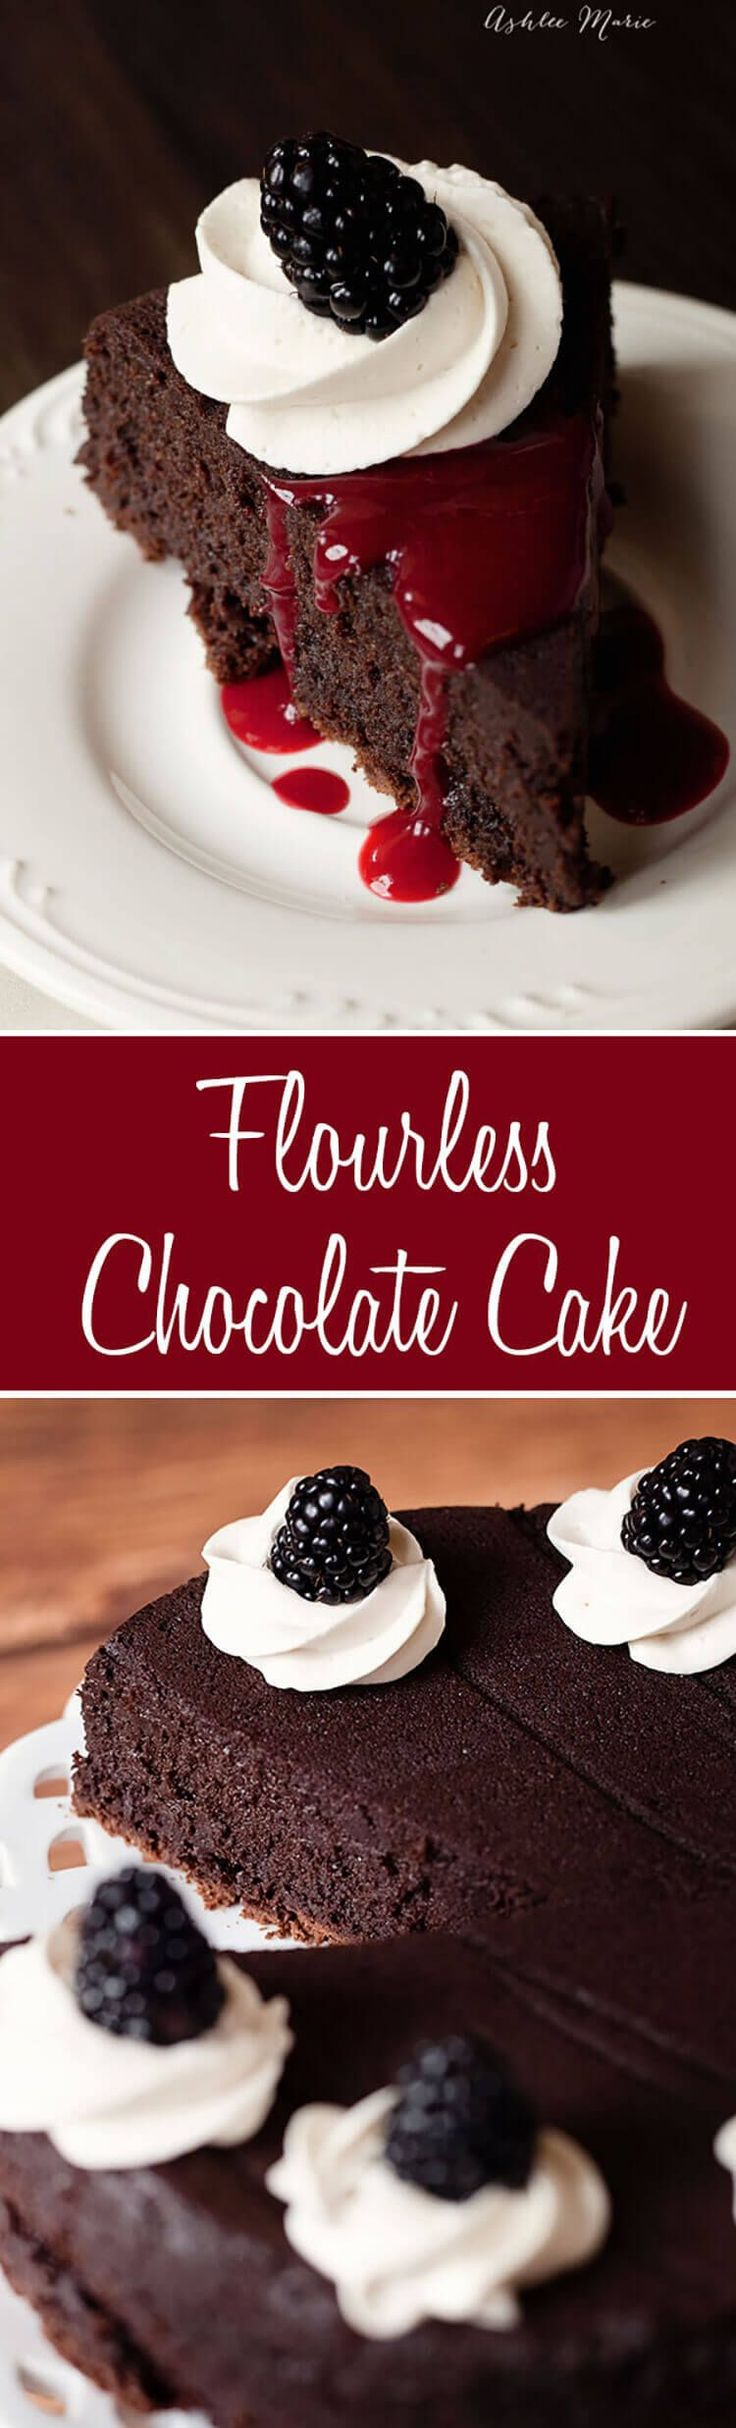 This is my favorite dessert ever. I make this cake at least once a month, its rich and dense and if you like chocolate you will love this, my most requested dessert